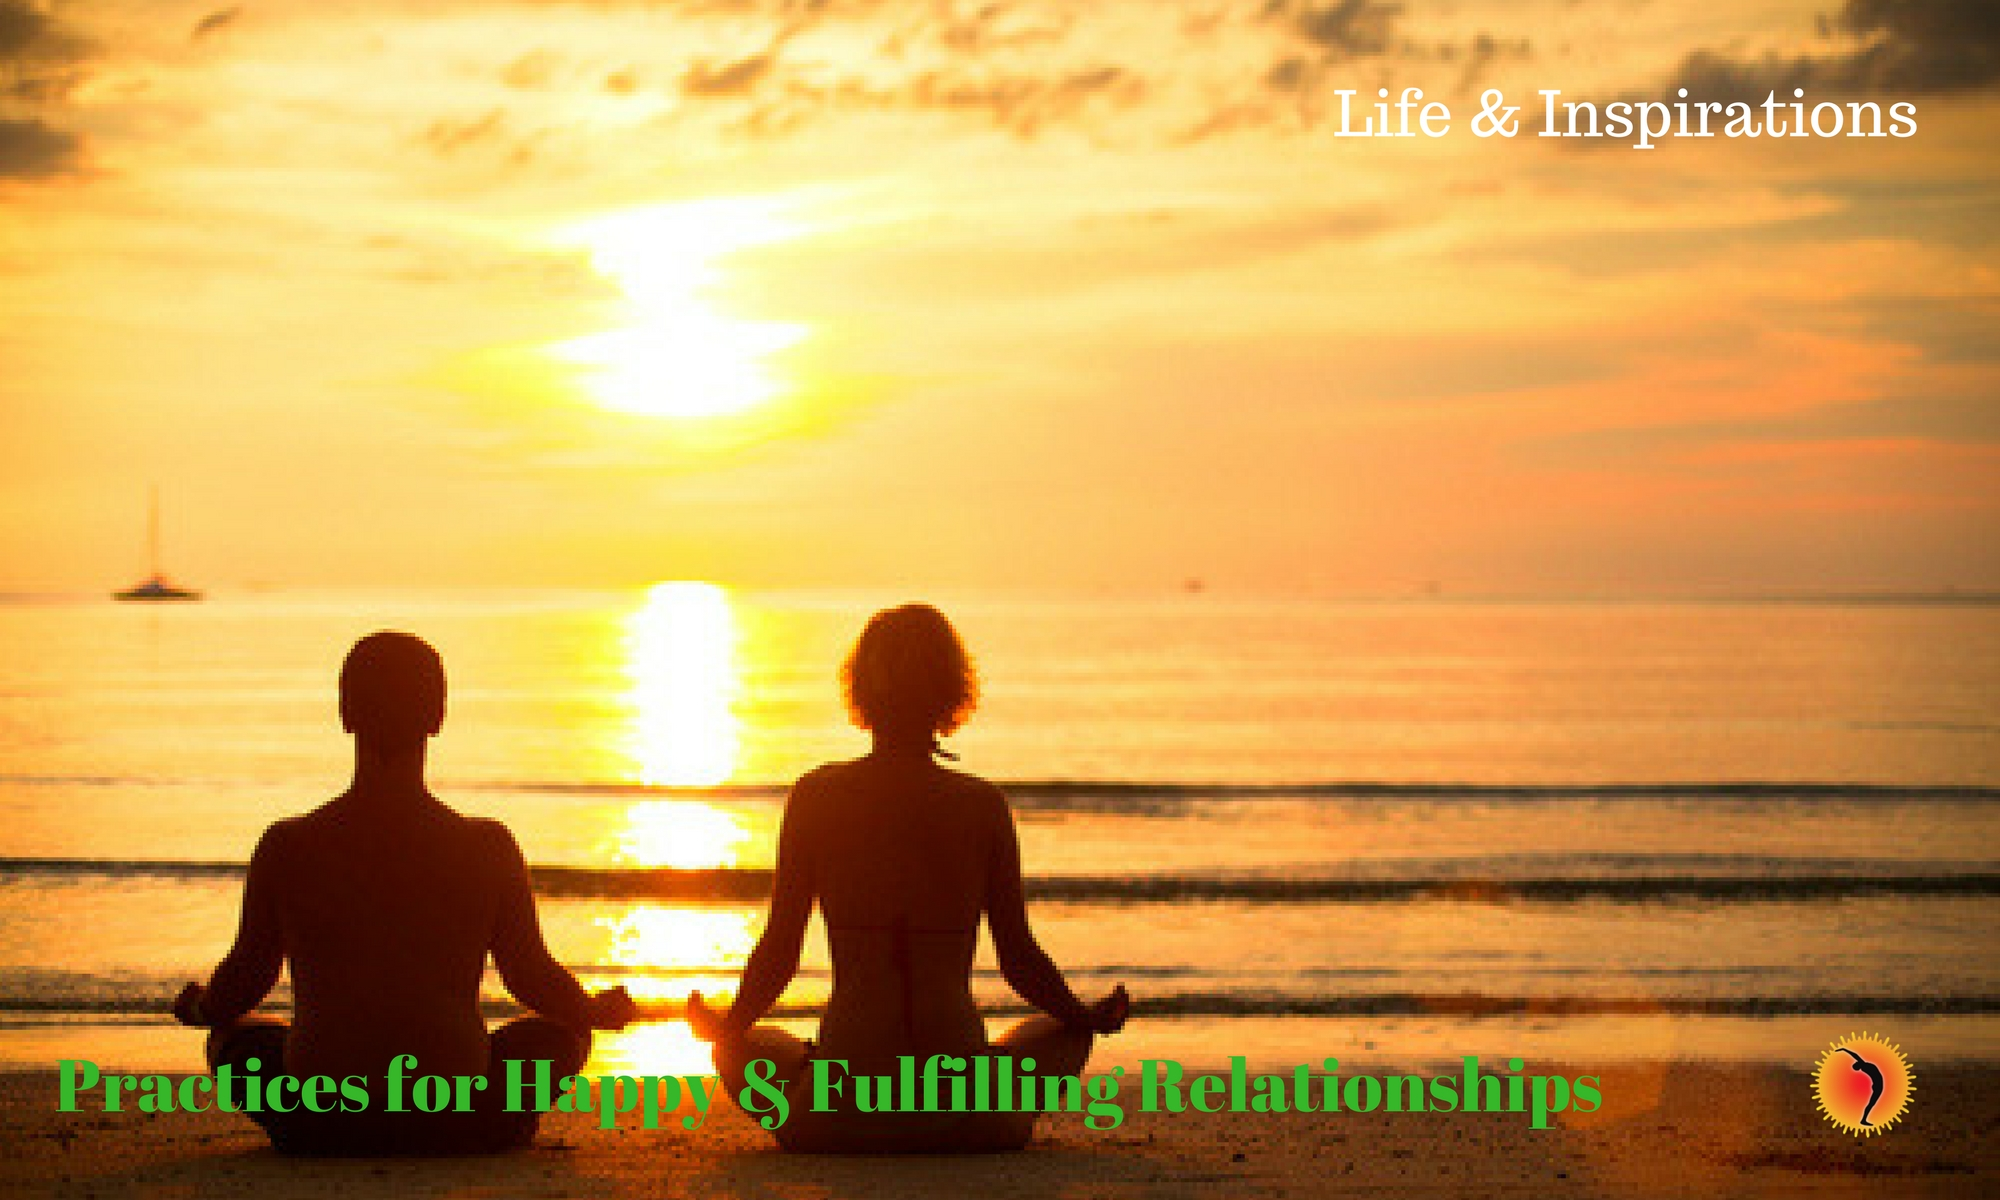 Practices for Happy & Fulfilling Relationships